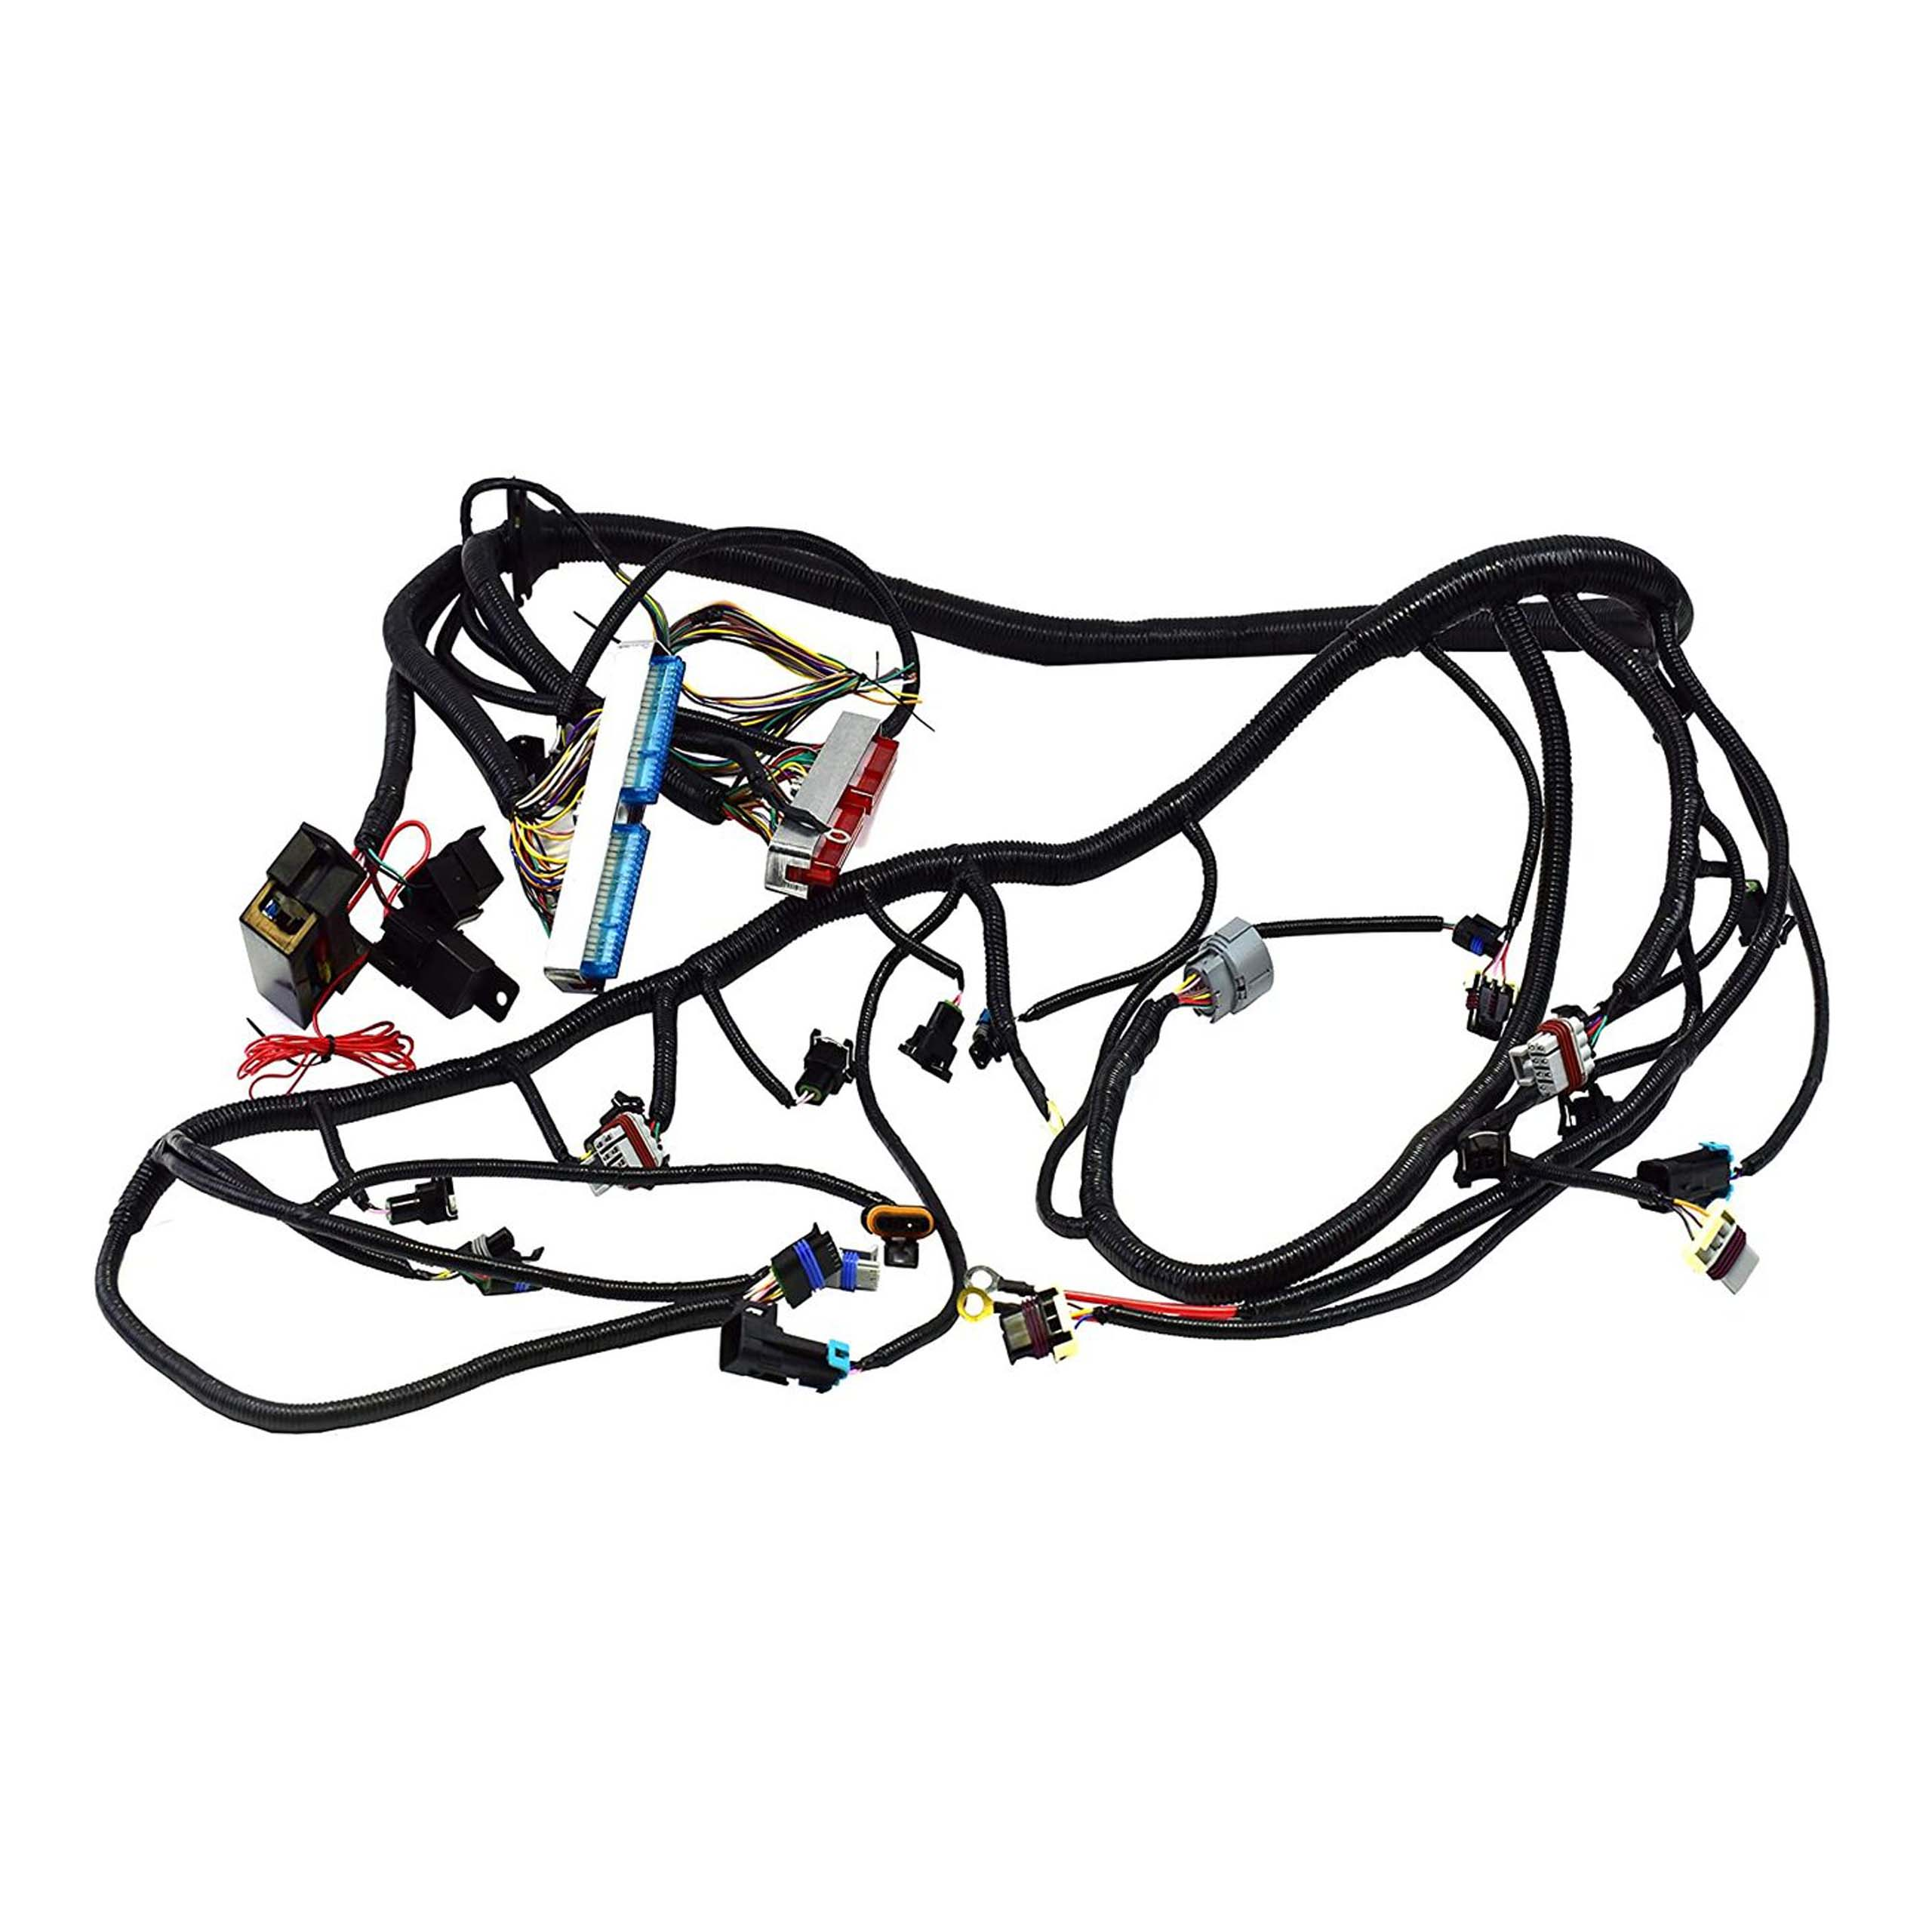 A-Team Performance Standalone Wiring Harness W/4L60E DBC Compatible With  4.8 5.3 6.0 GM LS LS1 LS6 LS Truck Swap Vortec 1999-2003  Southwest Performance Parts